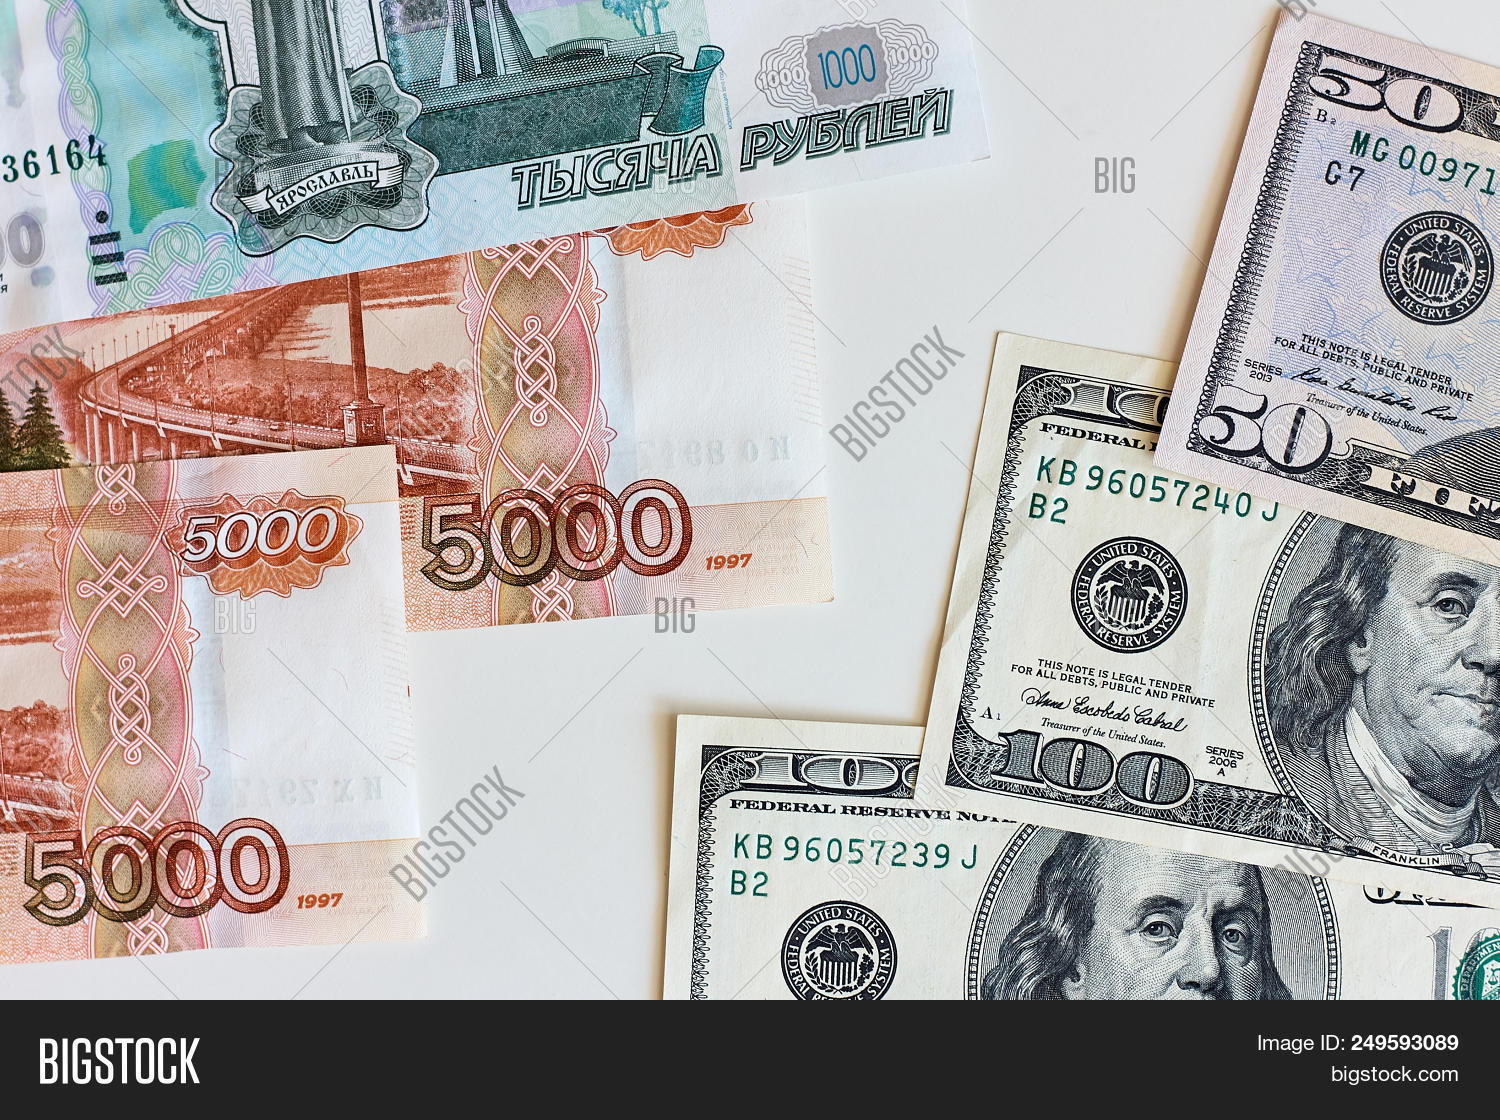 Money Exchange Rate Between The Us Dollar And Russian Rouble Concept